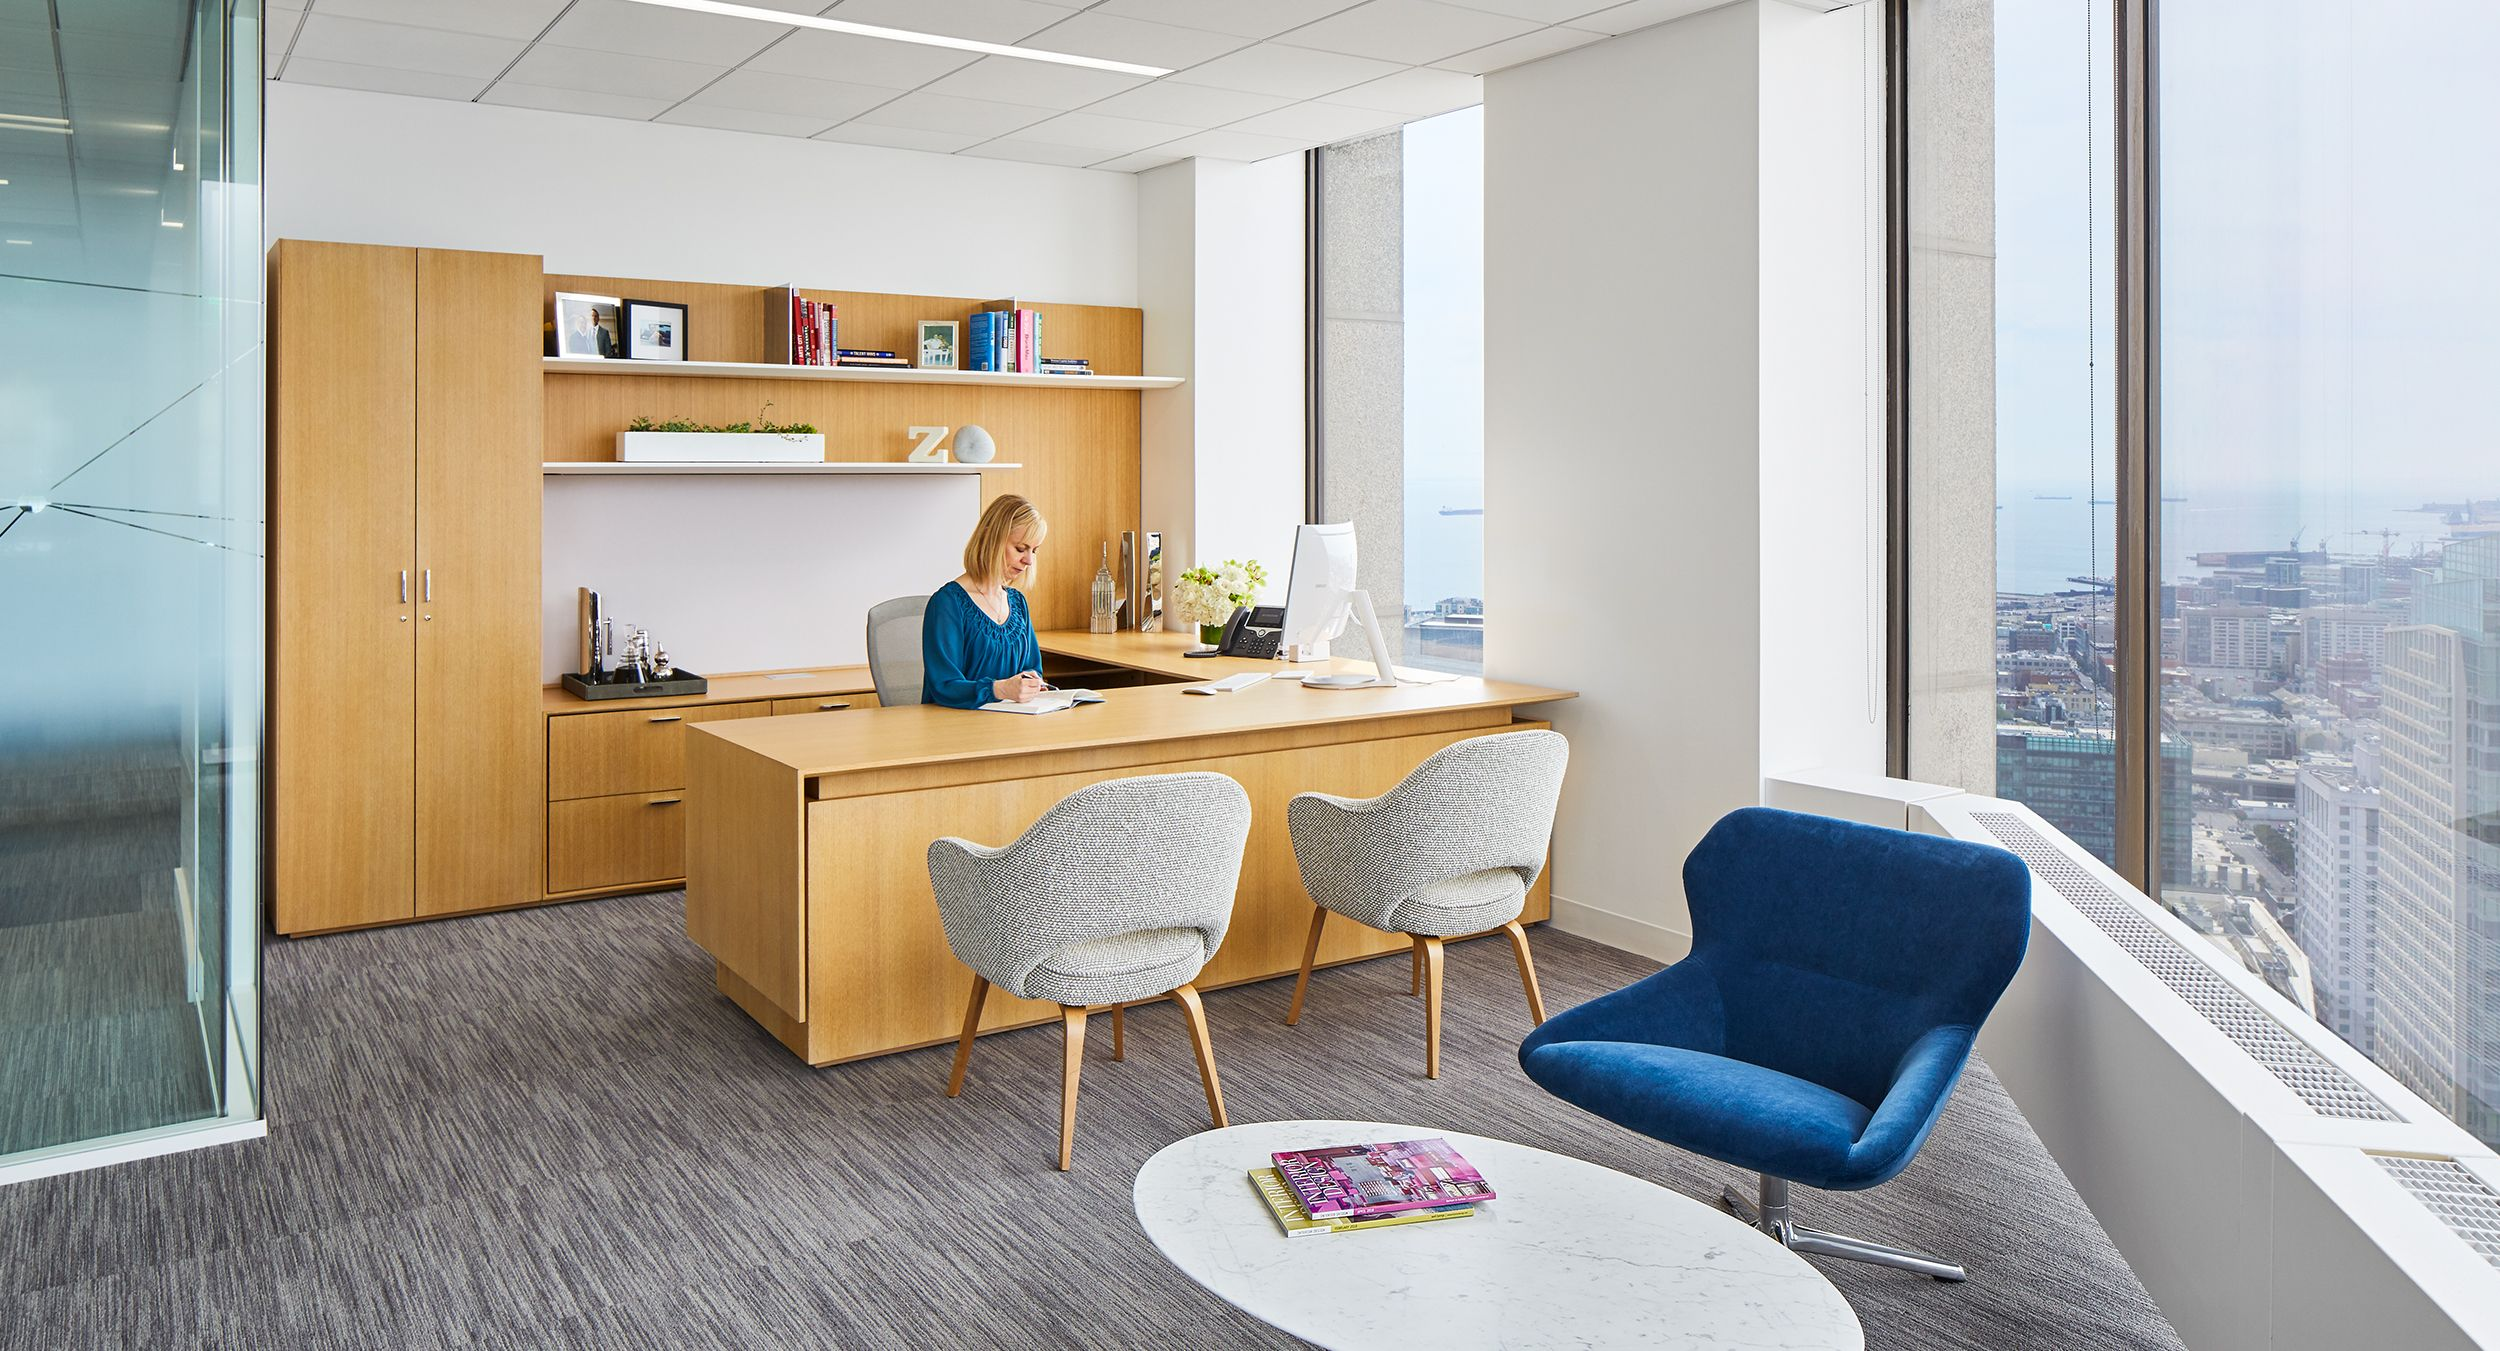 Beautiful private offices feature custom-designed adjustable-height desking in Rift White Oak.